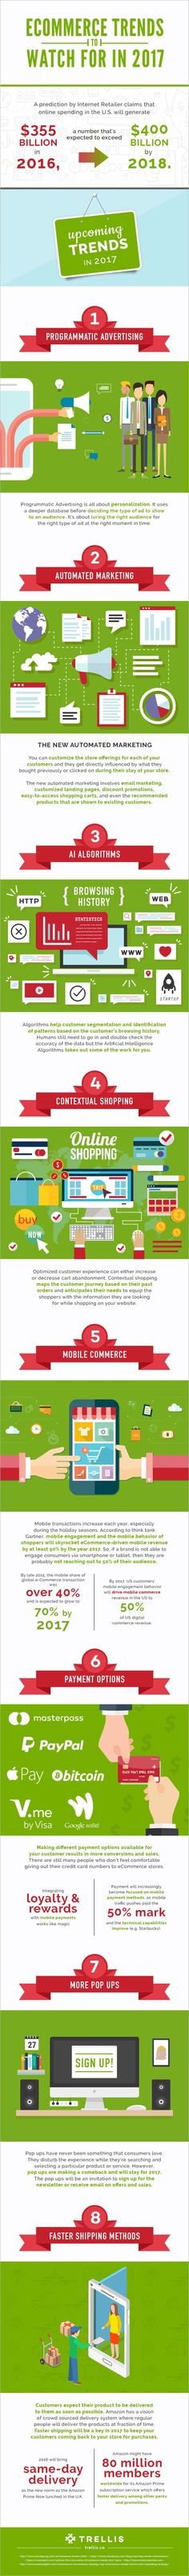 Ecommerce Trends to